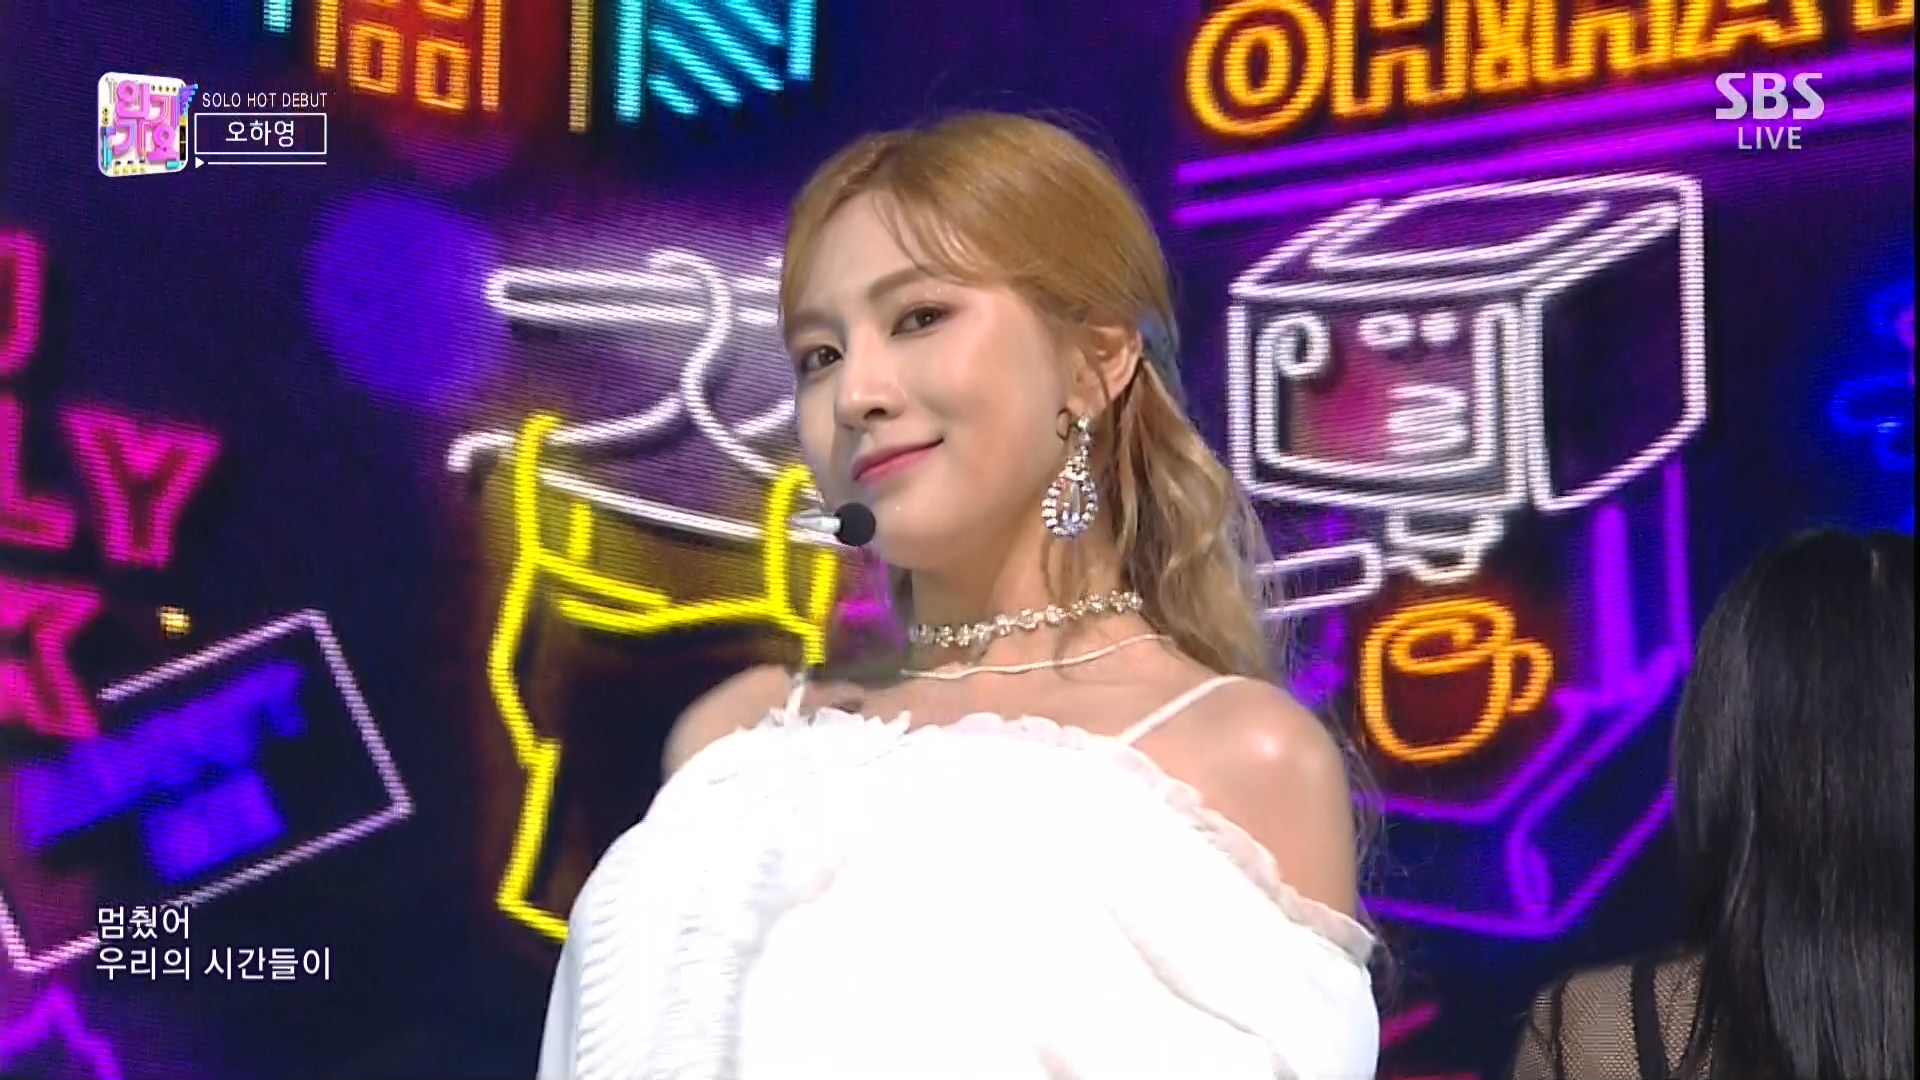 190825 SBS Inkigayo OH HAYOUNG (Apink) - Do you miss me + Don't Make Me Lau.jpg